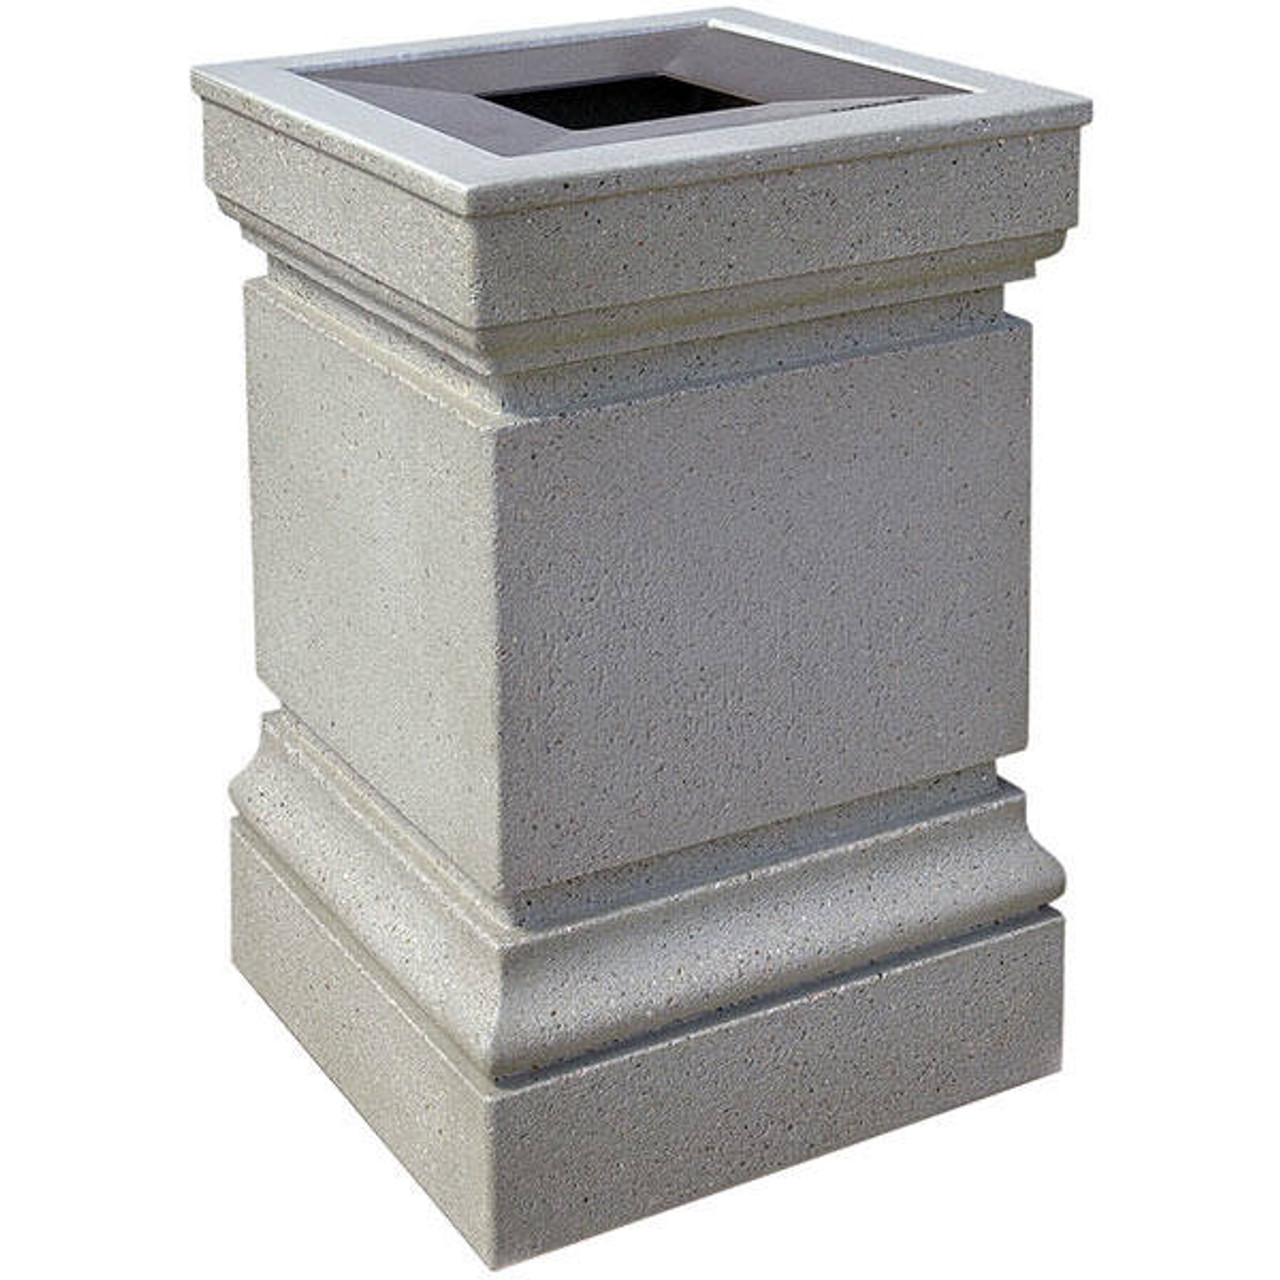 24 Gallon Cartier Concrete Pitch In Top Outdoor Waste Container WS1043